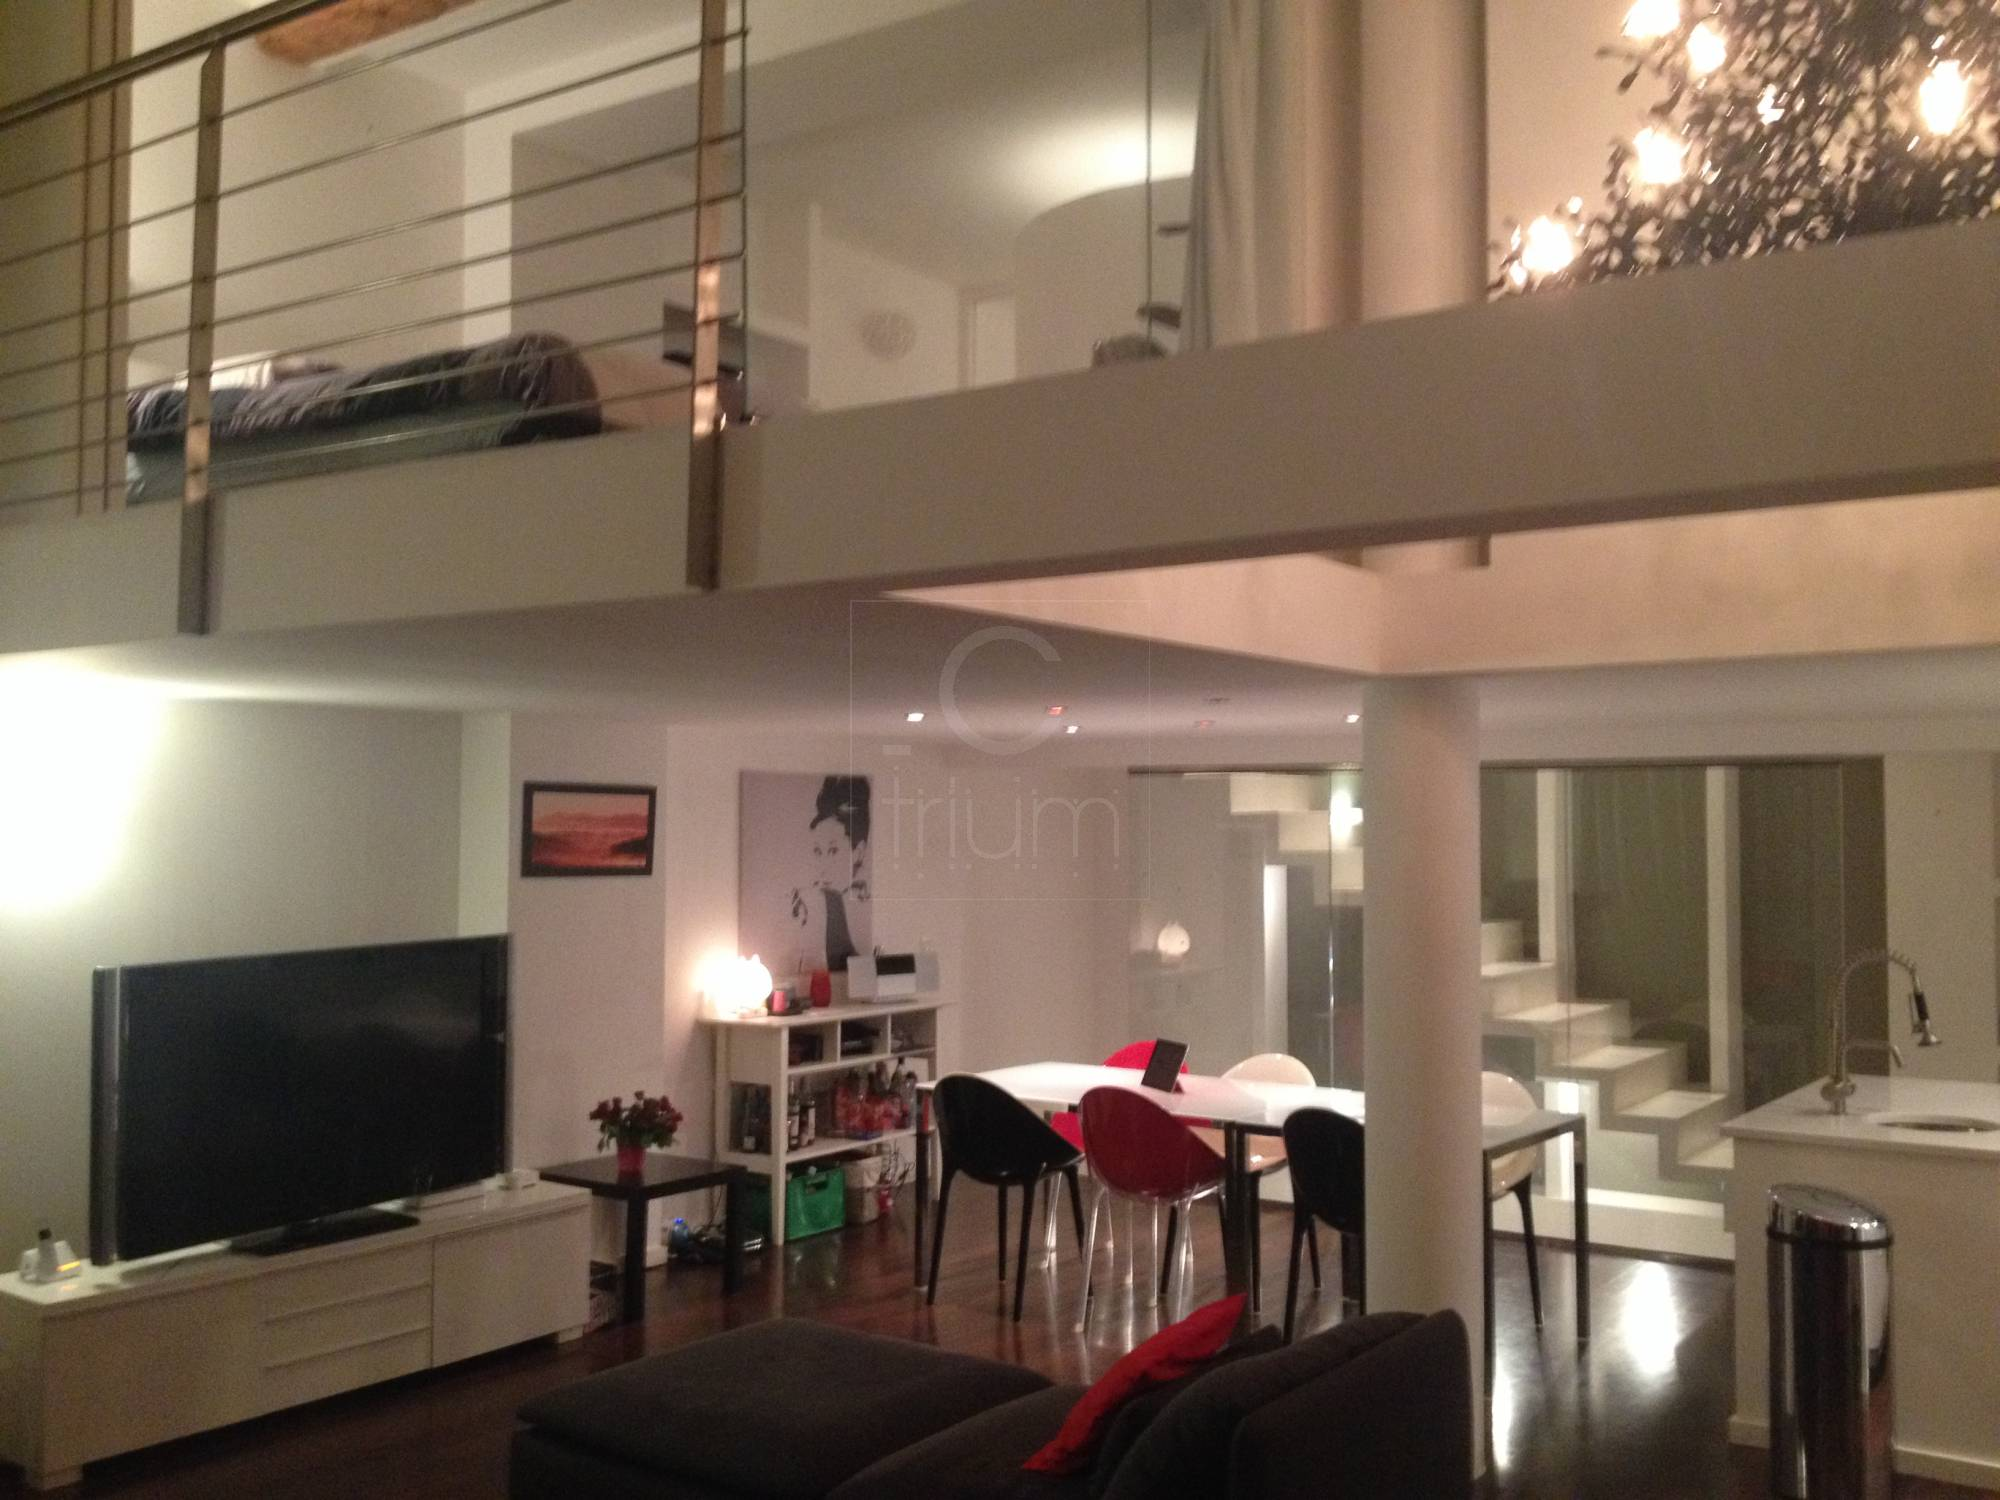 Vente t4 f4 marseille 13006 bd notre dame espace atypique for Agence immobiliere 13006